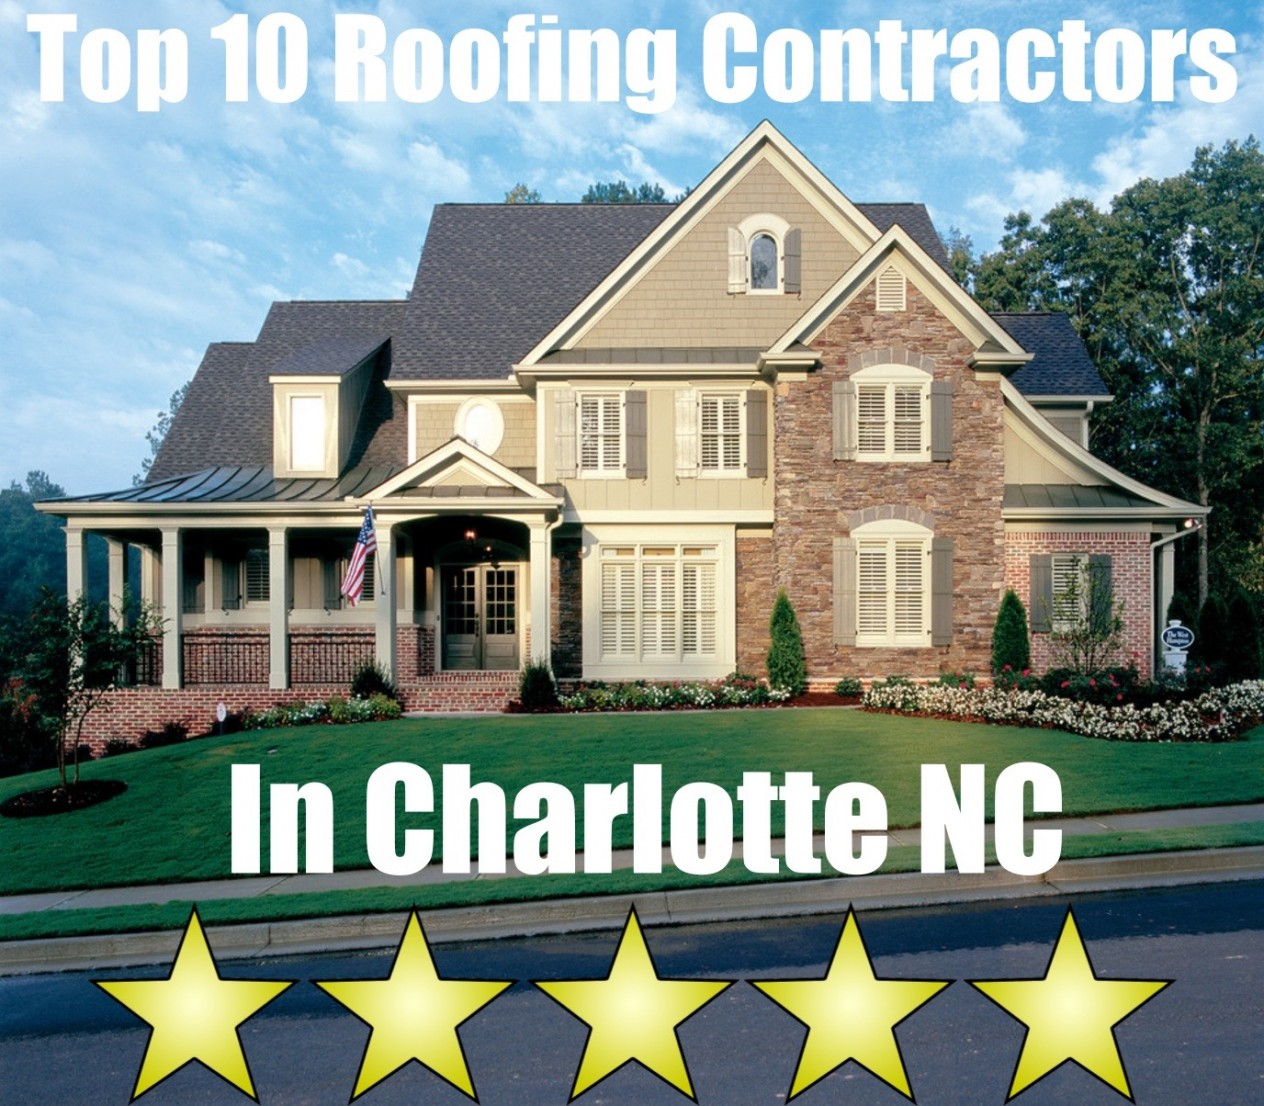 Top 10 Roofing Contractors in Charlotte NC